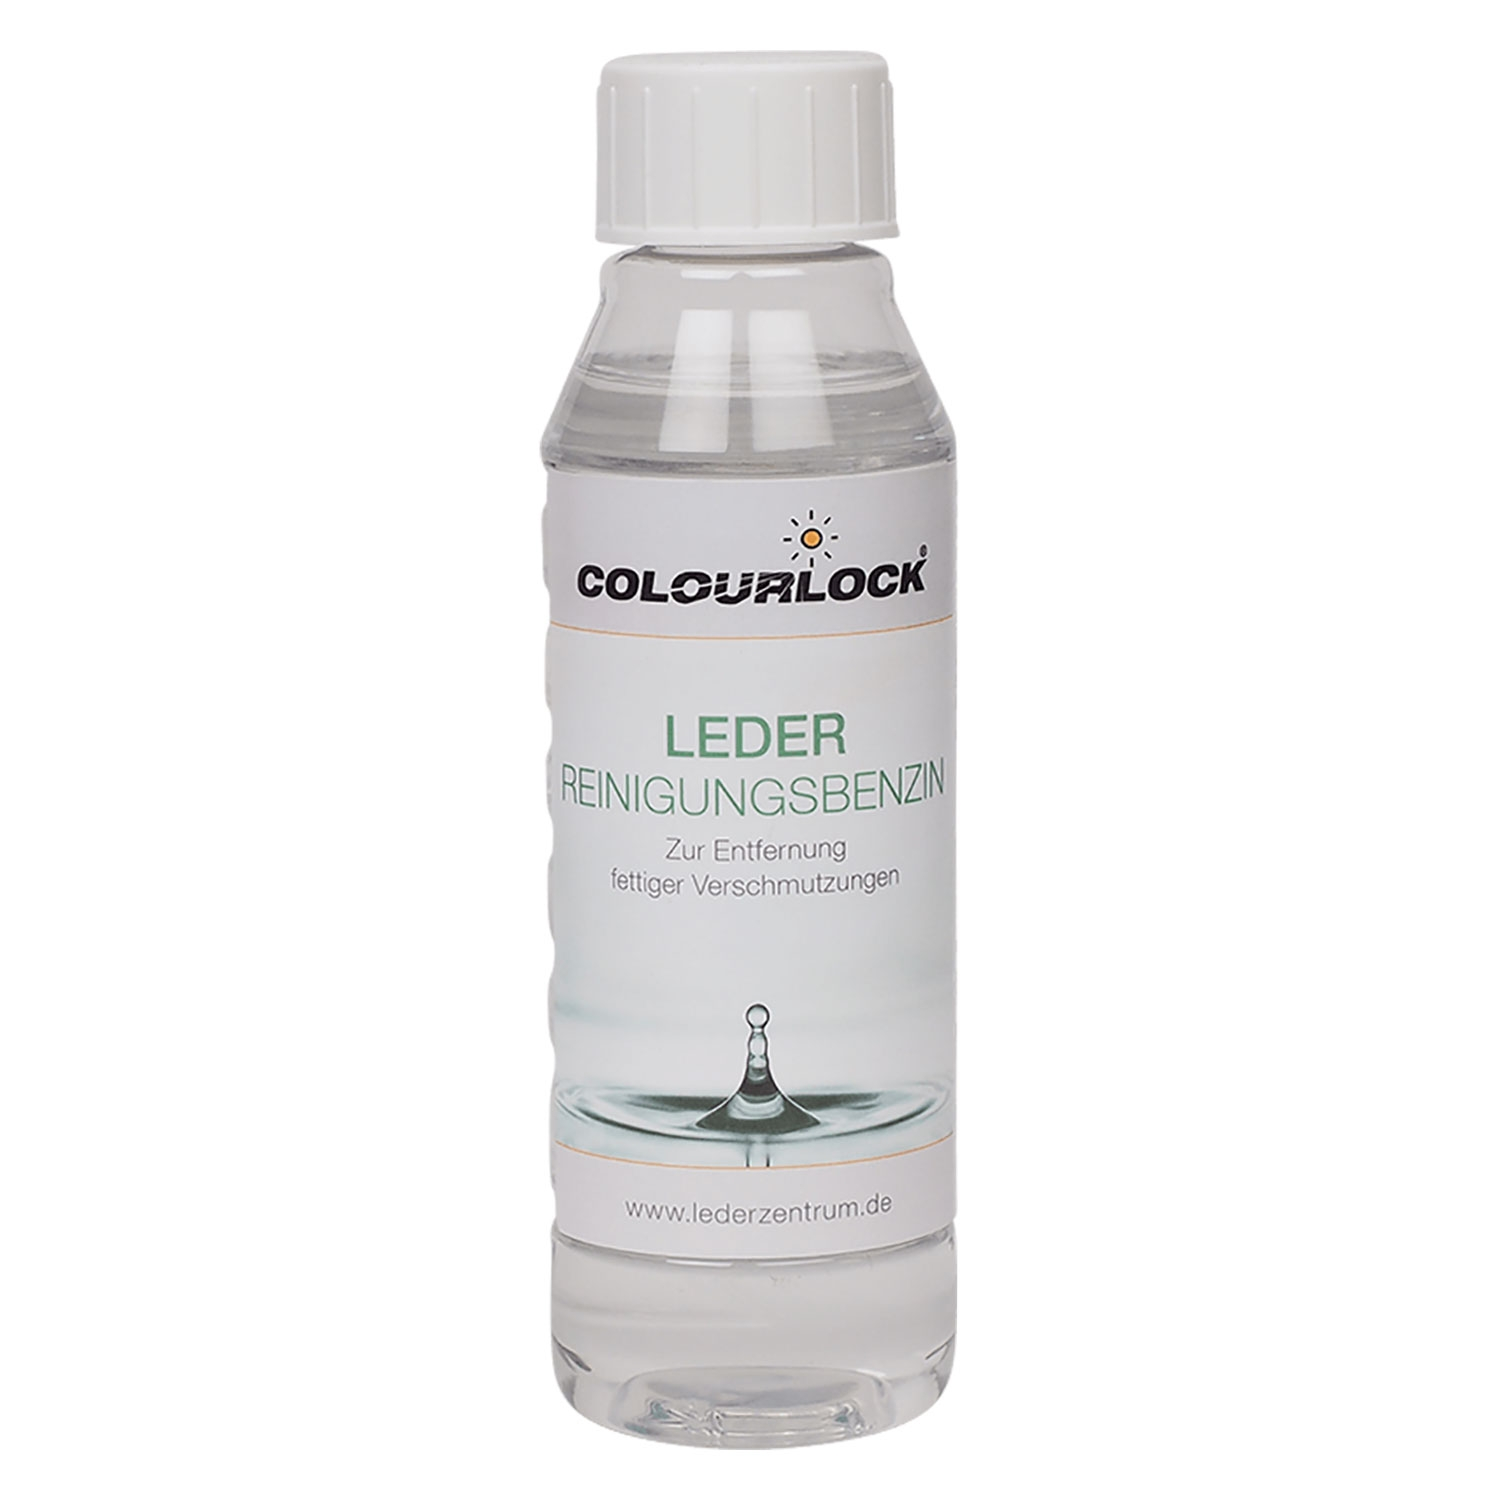 COLOURLOCK Leder Reinigungsbenzin, 225 ml